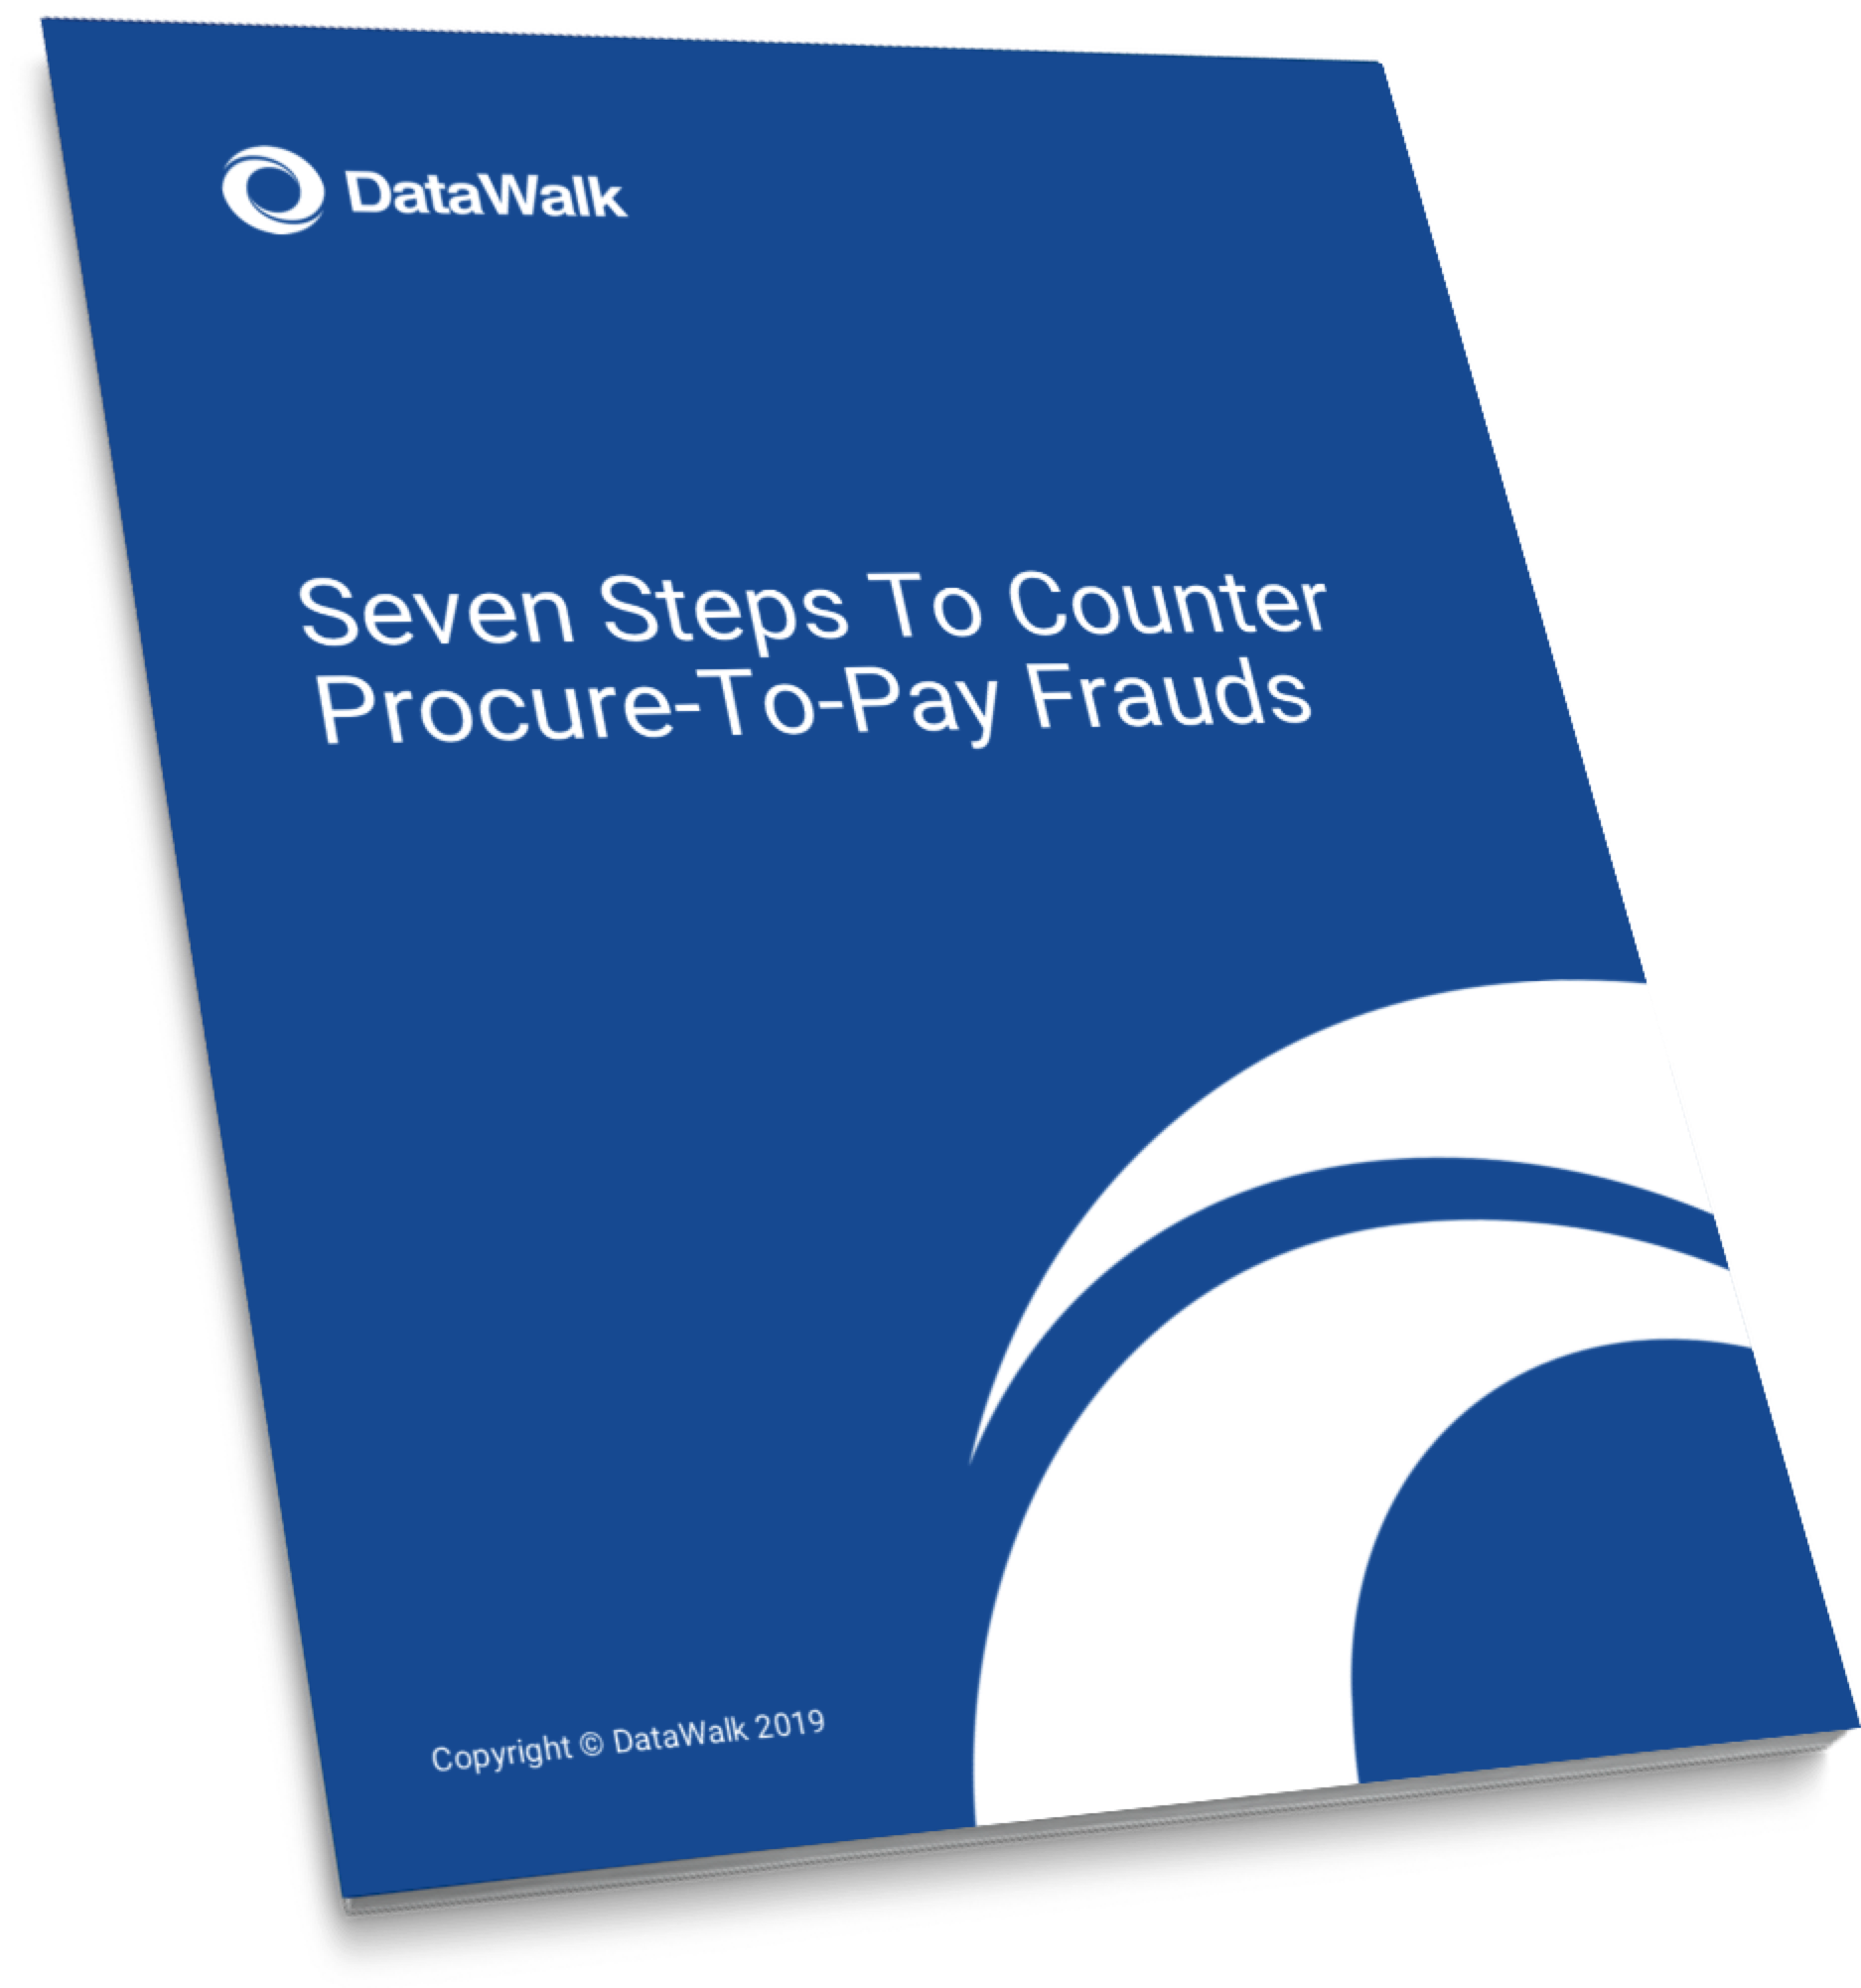 DataWalk Seven Steps To Counter Procure To Pay Frauds